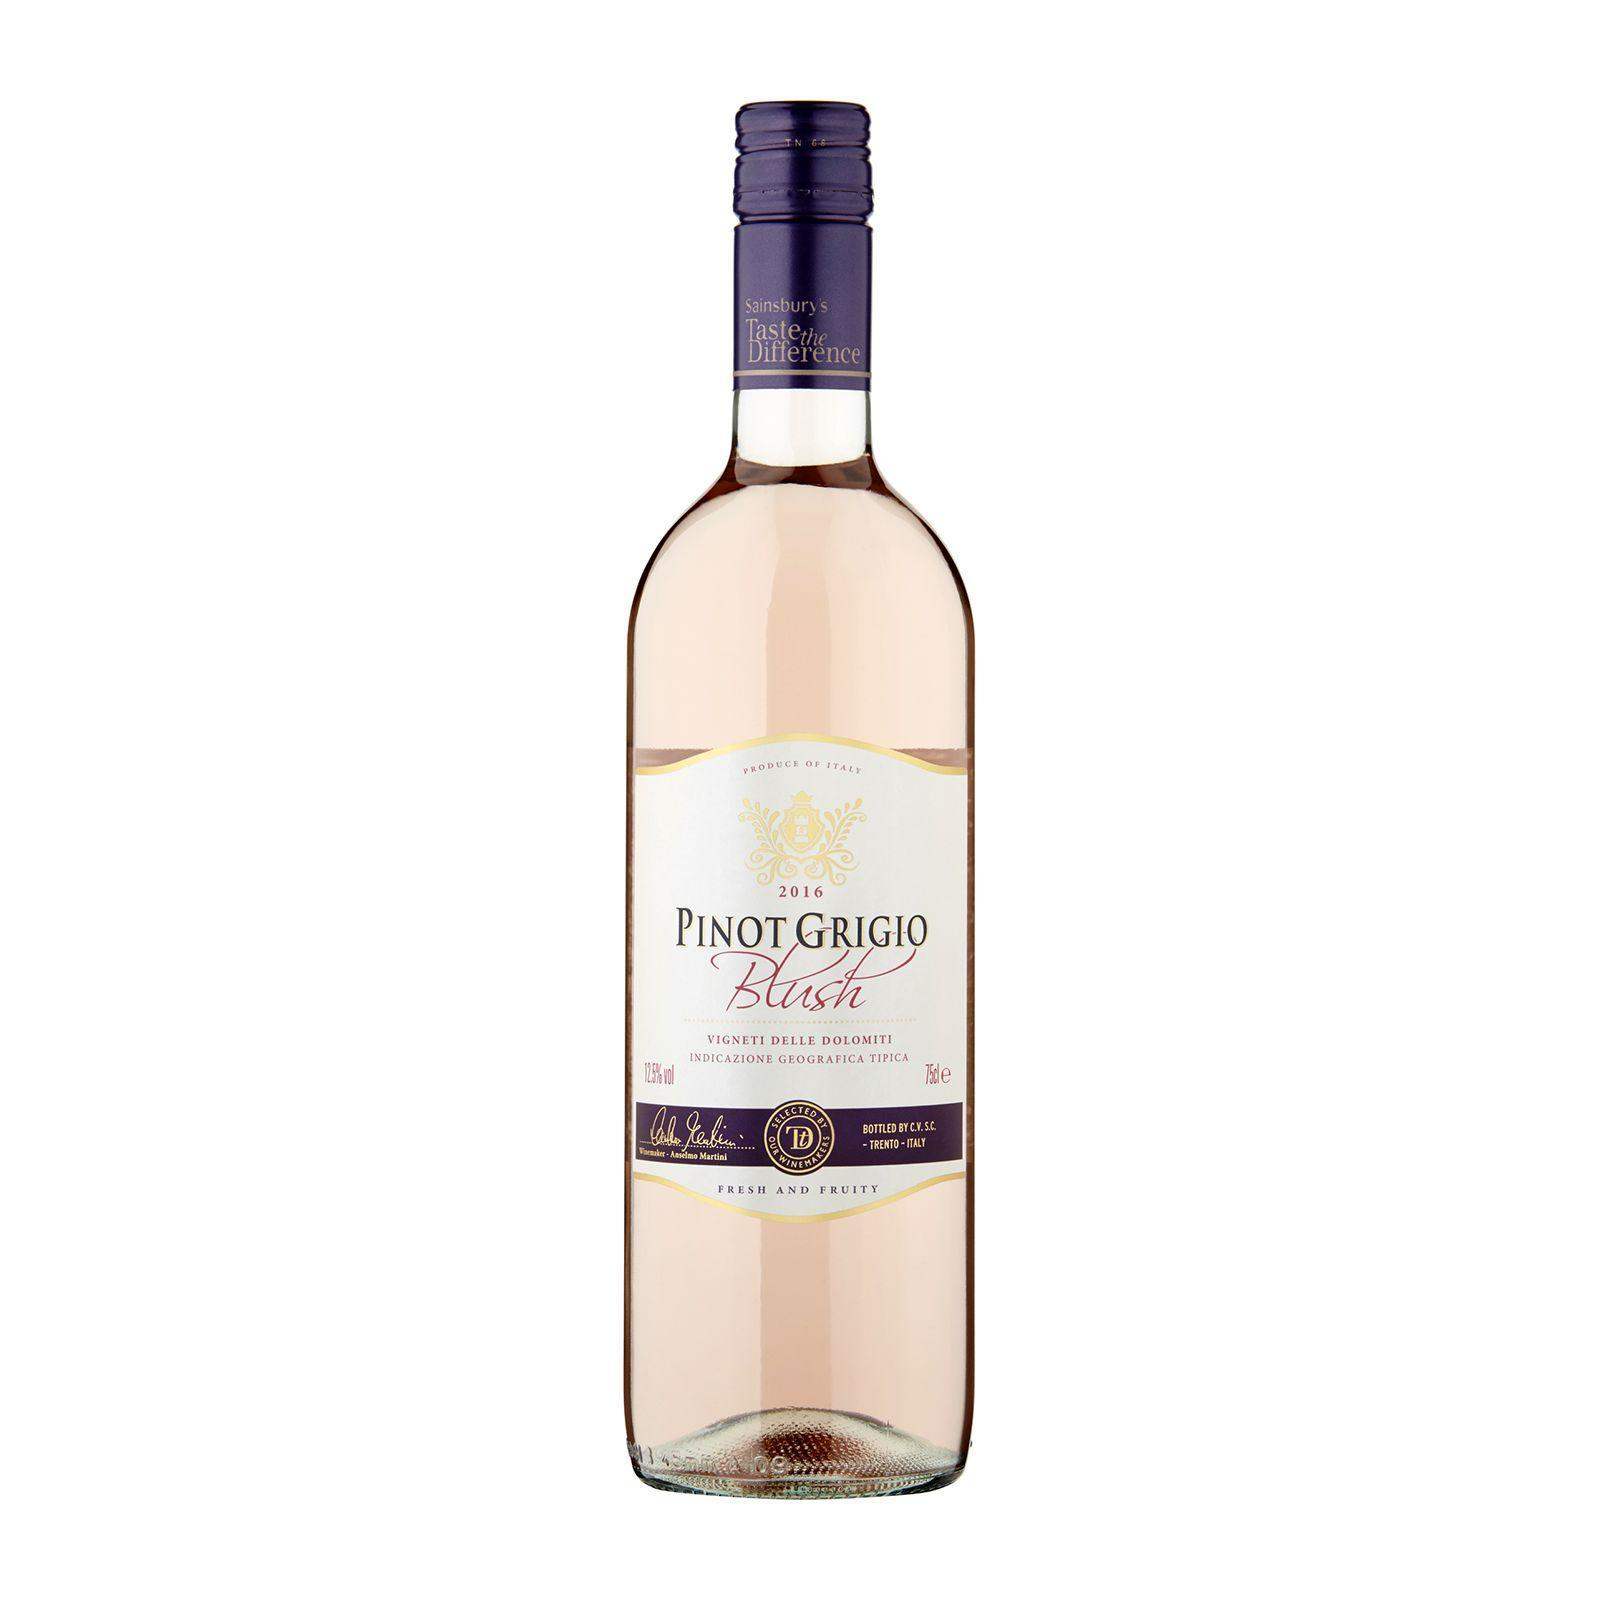 Sainsbury's House Pinot Grigio Blush Rose Wine